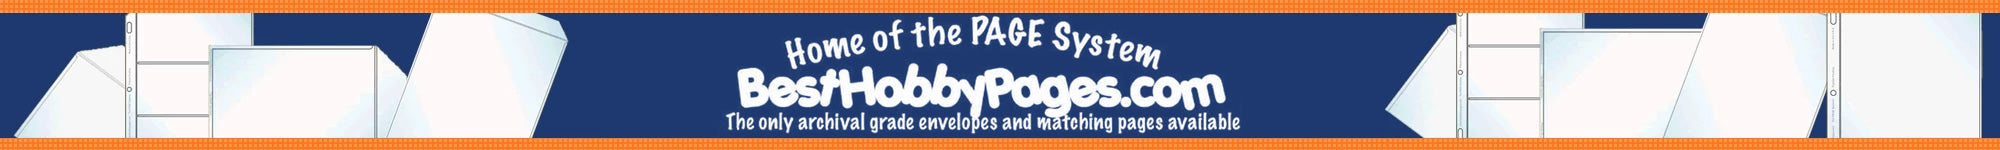 Best Hobby Pages